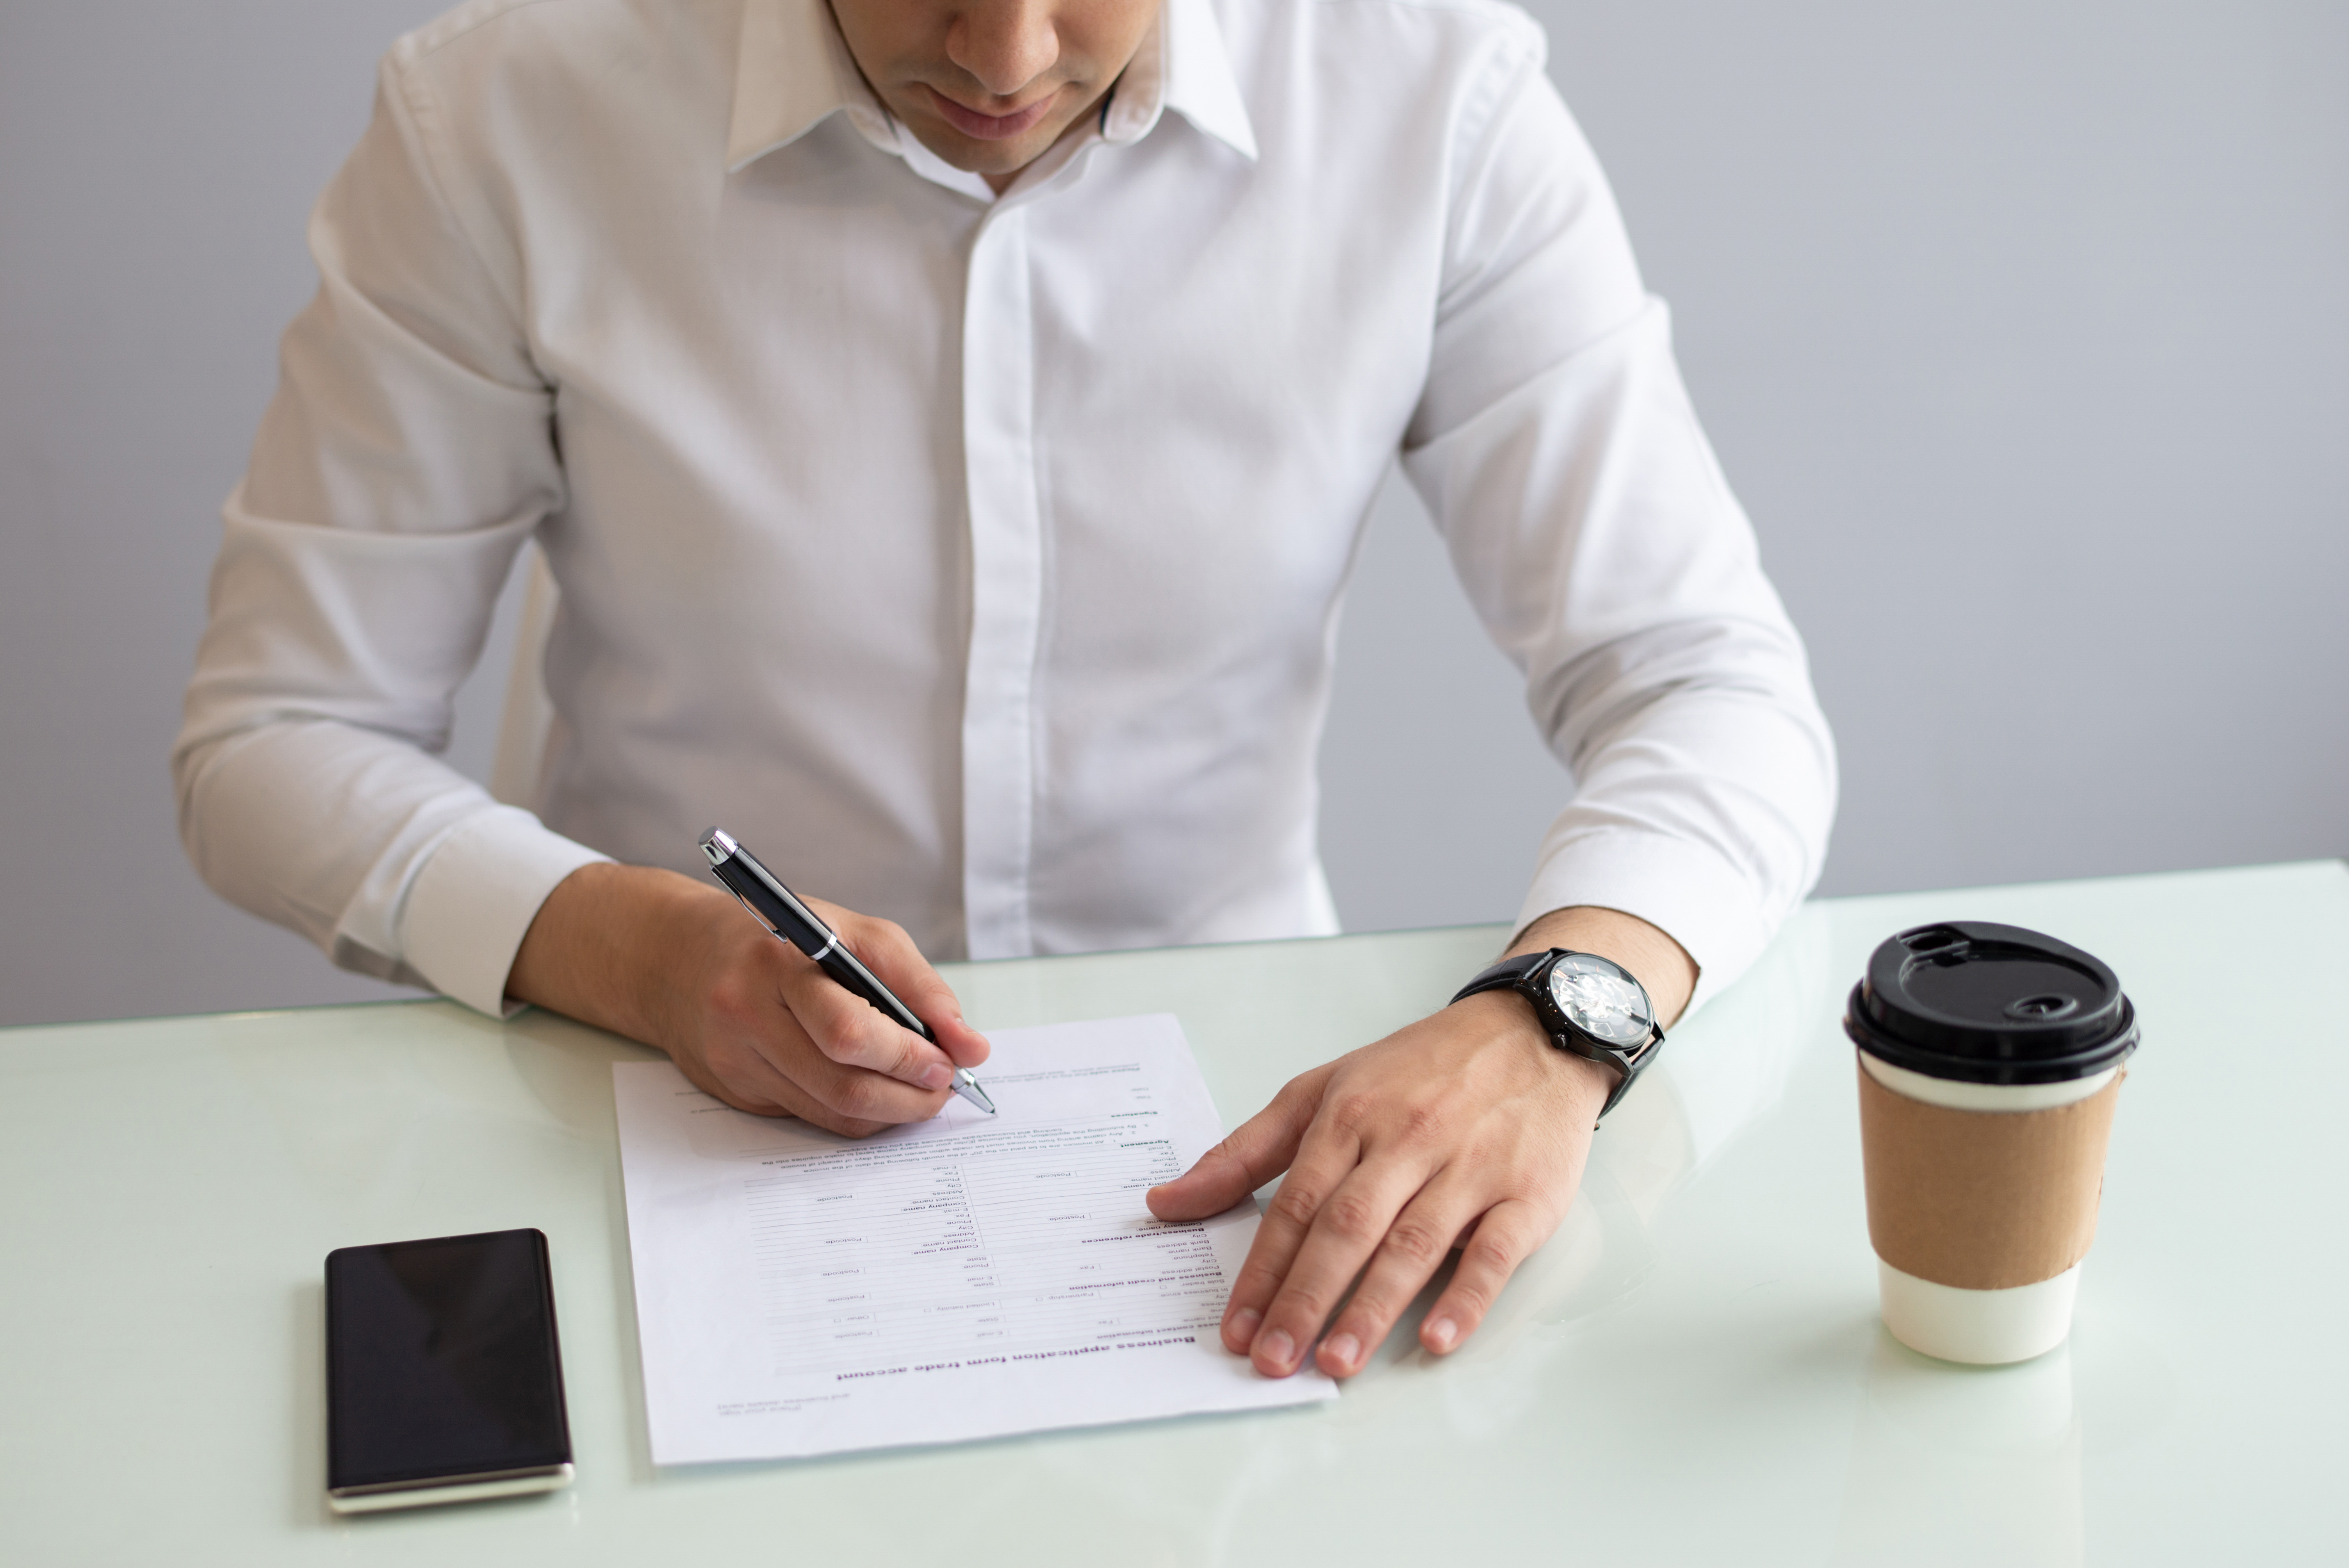 a male employee filling up a market research survey on a desk with his phone and coffee